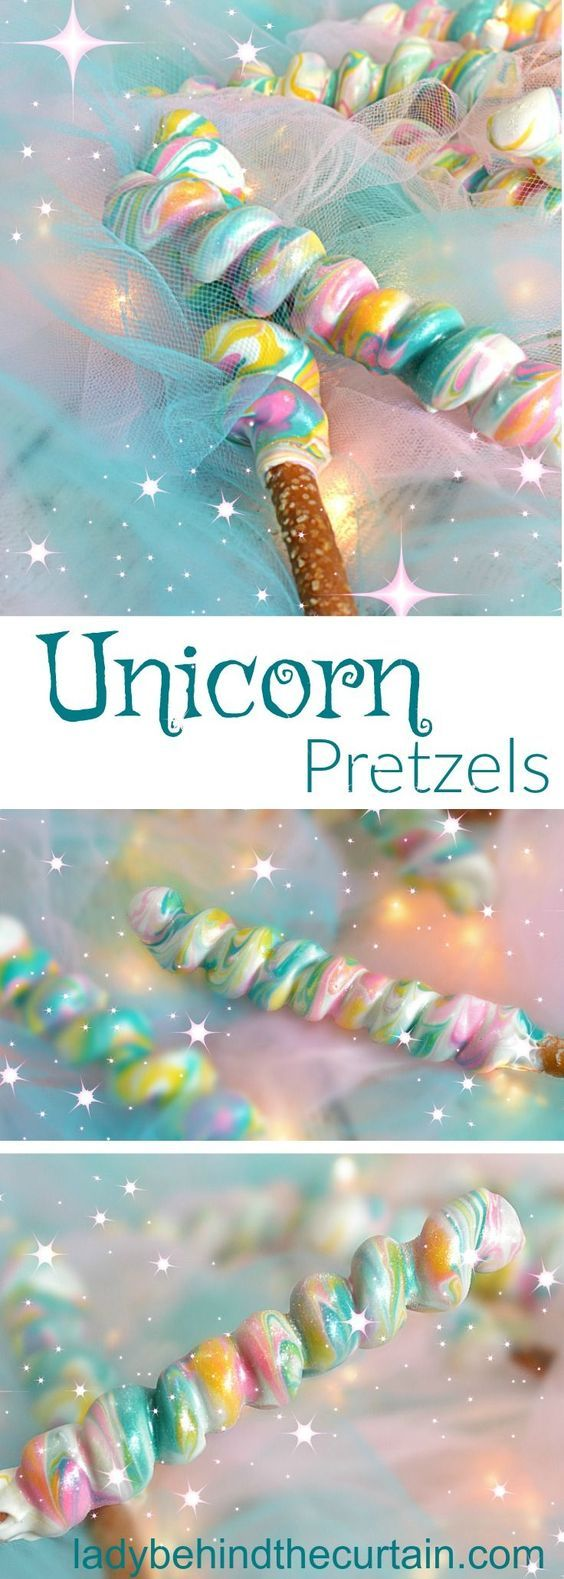 Kids party favors fun factory childrens parties entertainment rentals - Unicorn Pretzels Unicorn Birthday Party Little Girls Birthday Party Dessert Decorated Pretzels